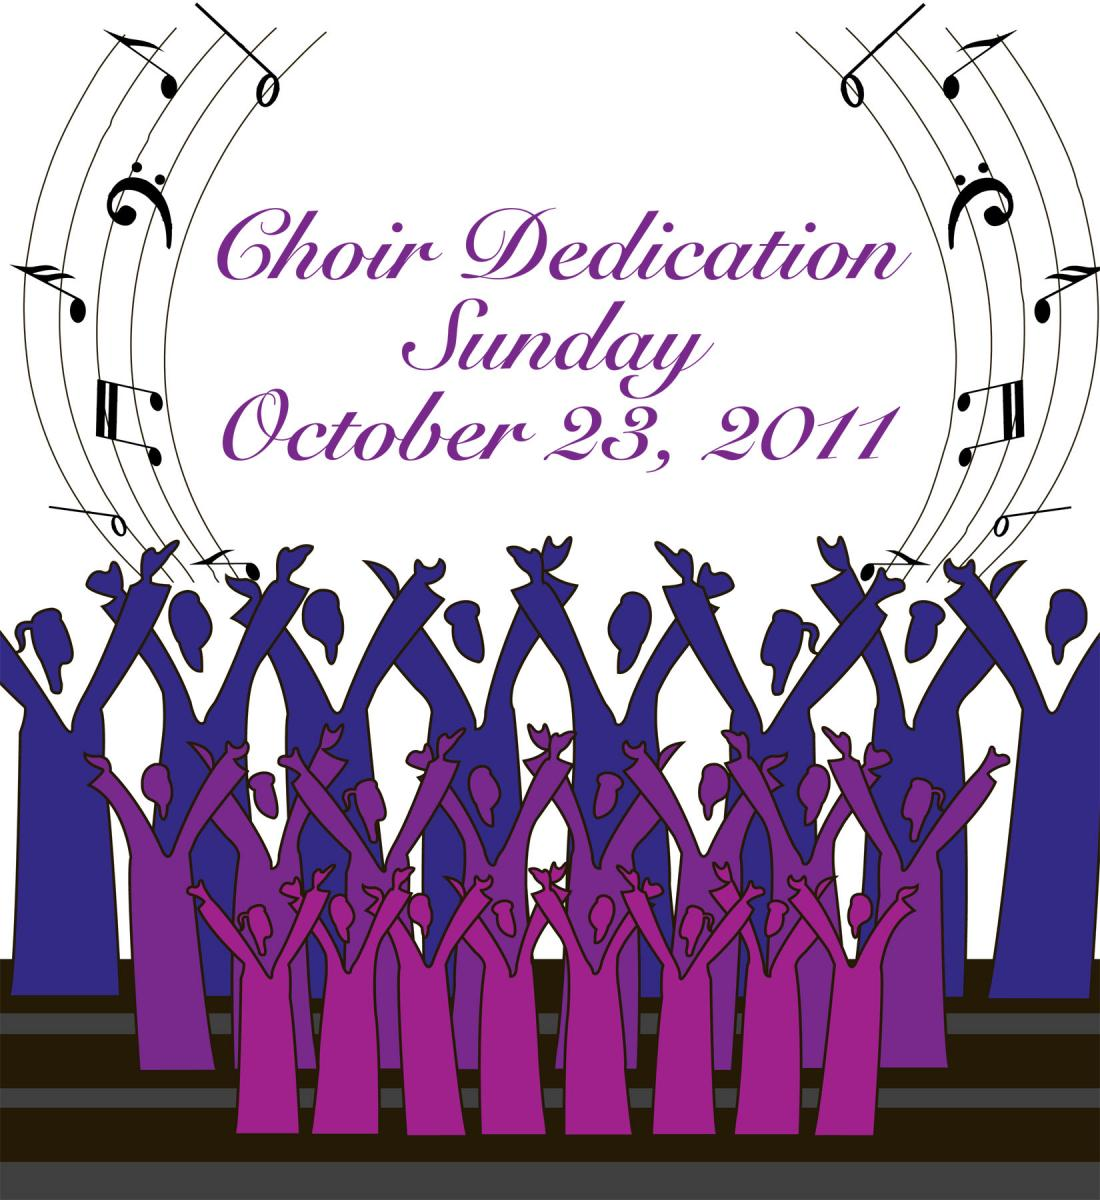 Anniversary clipart choir.